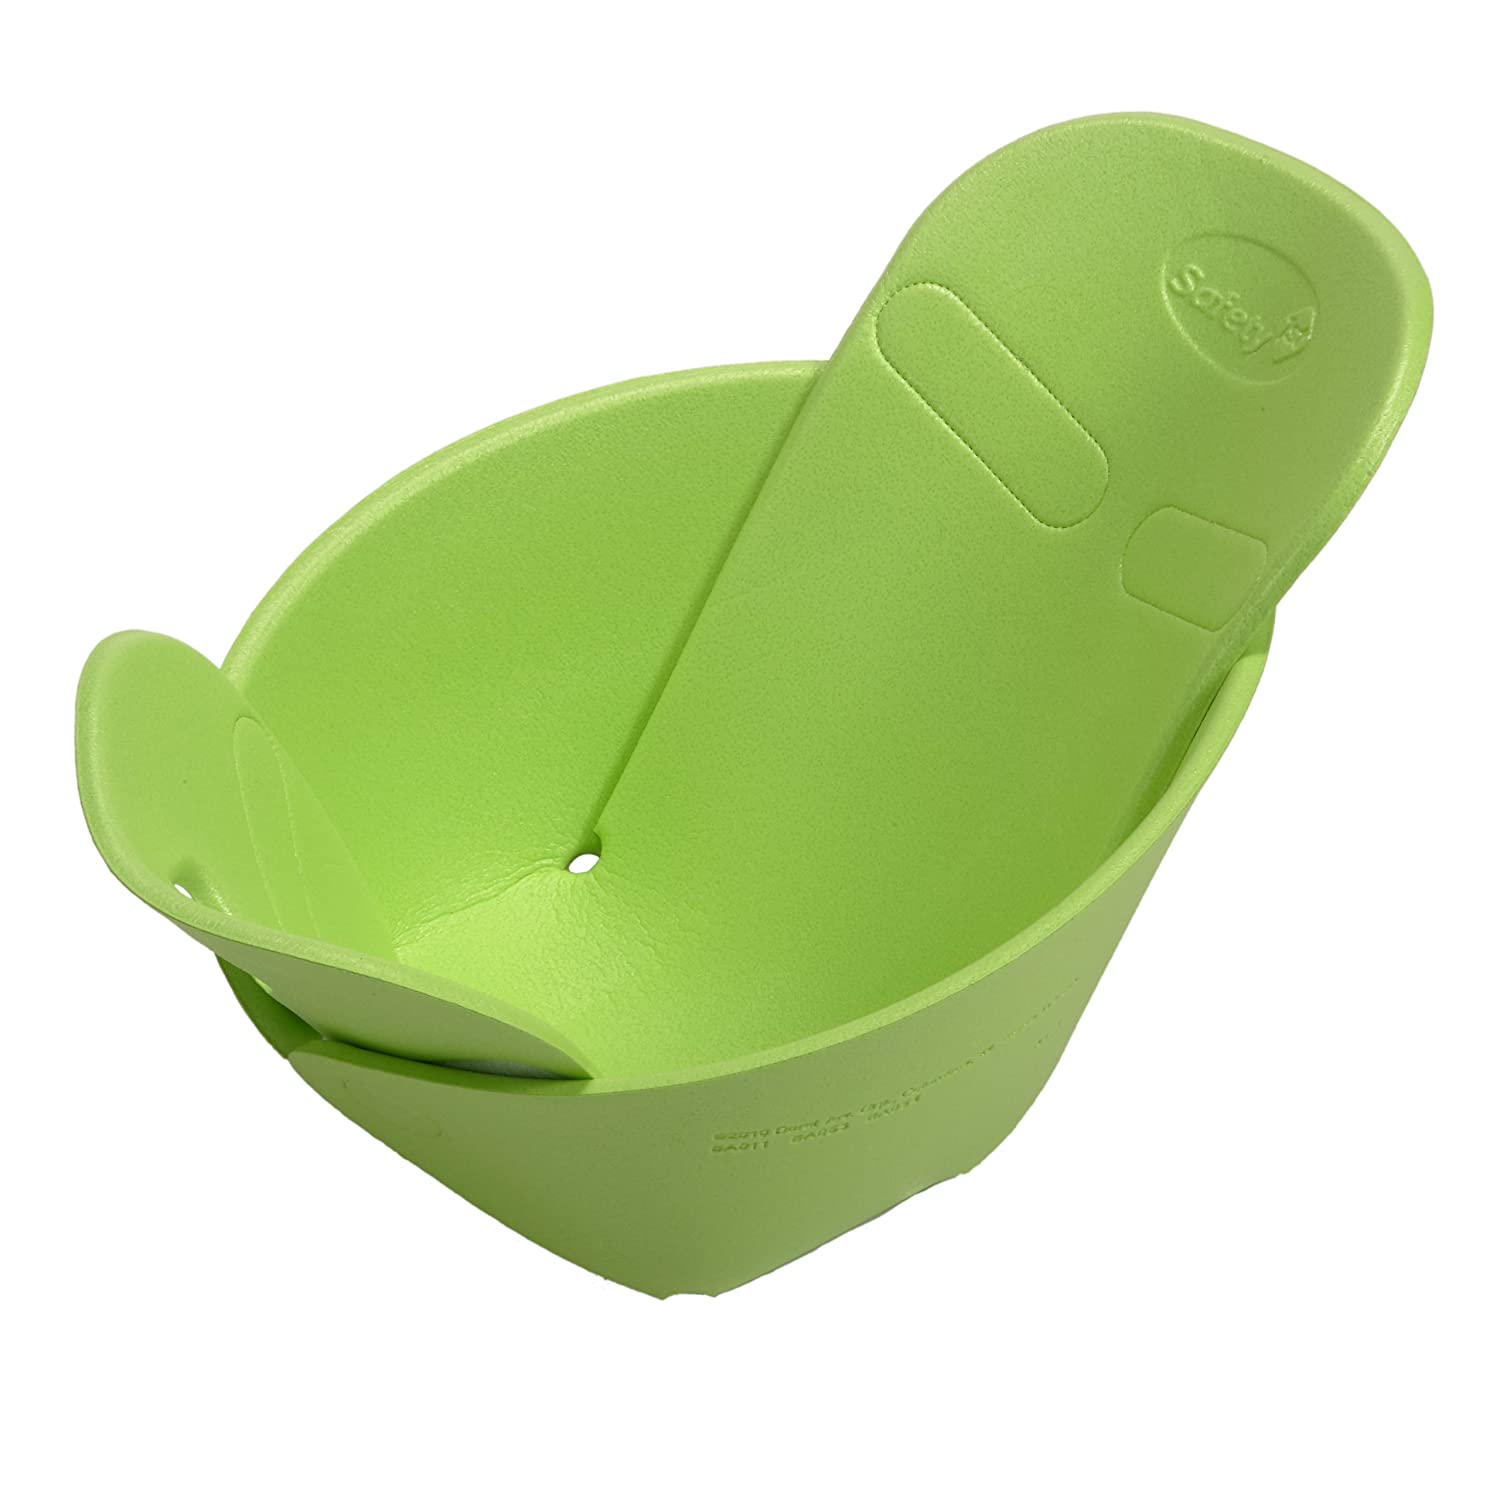 Amazon.com: Safety 1st Sink Snuggler Baby Bather, Green: Baby